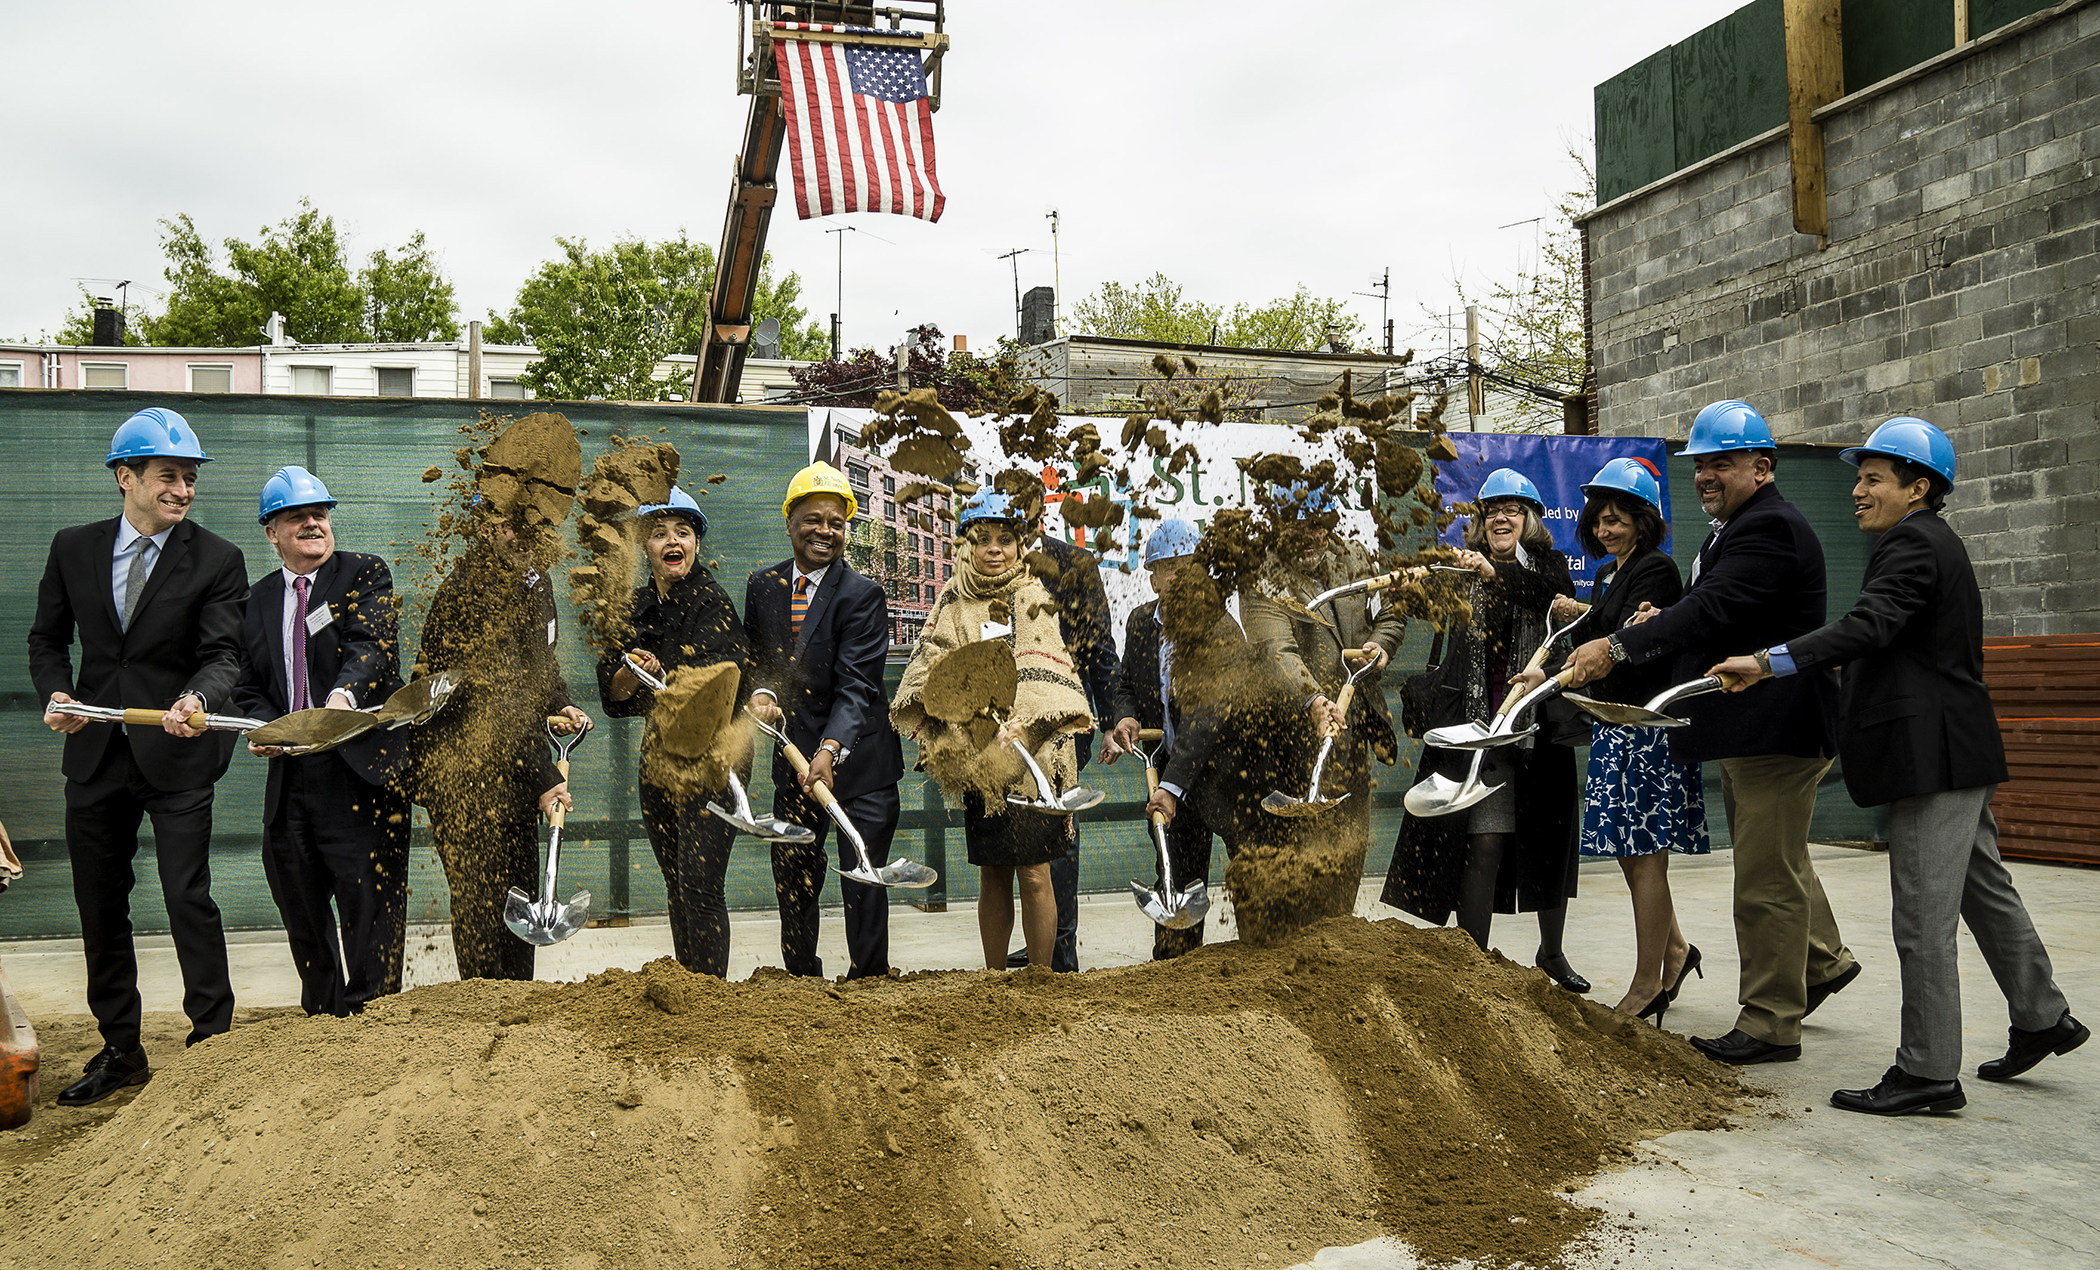 St. Nicks Alliance breaks ground for a new affordable complex at 695 Grand Street.